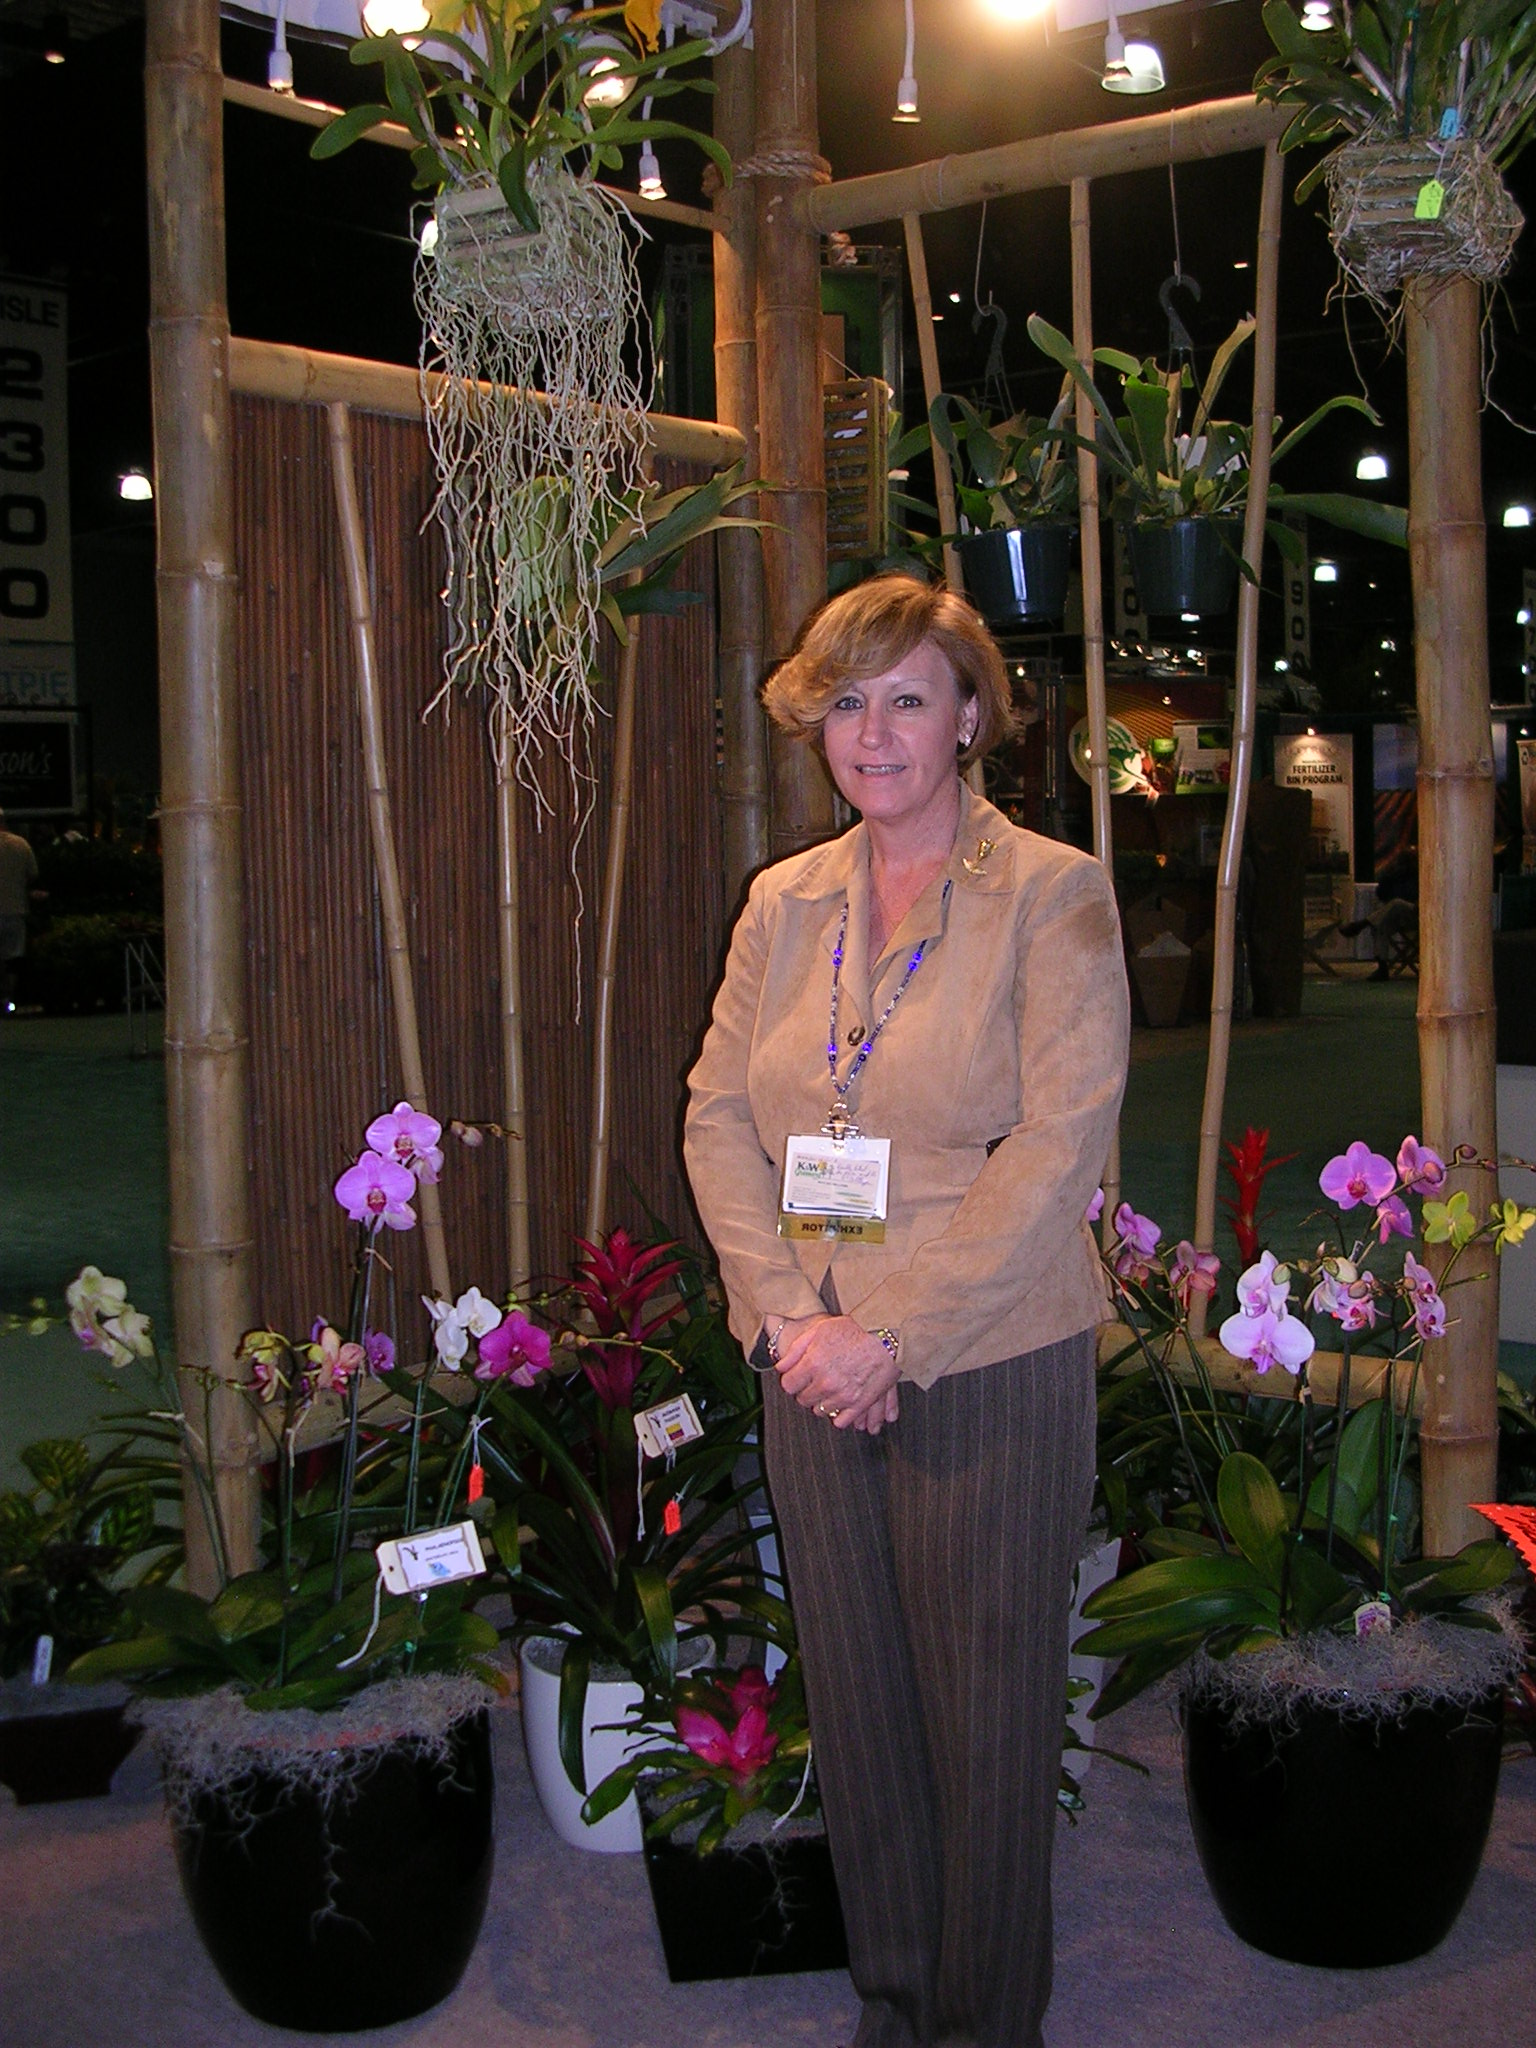 Patty Rabin of Living Colors Nursery